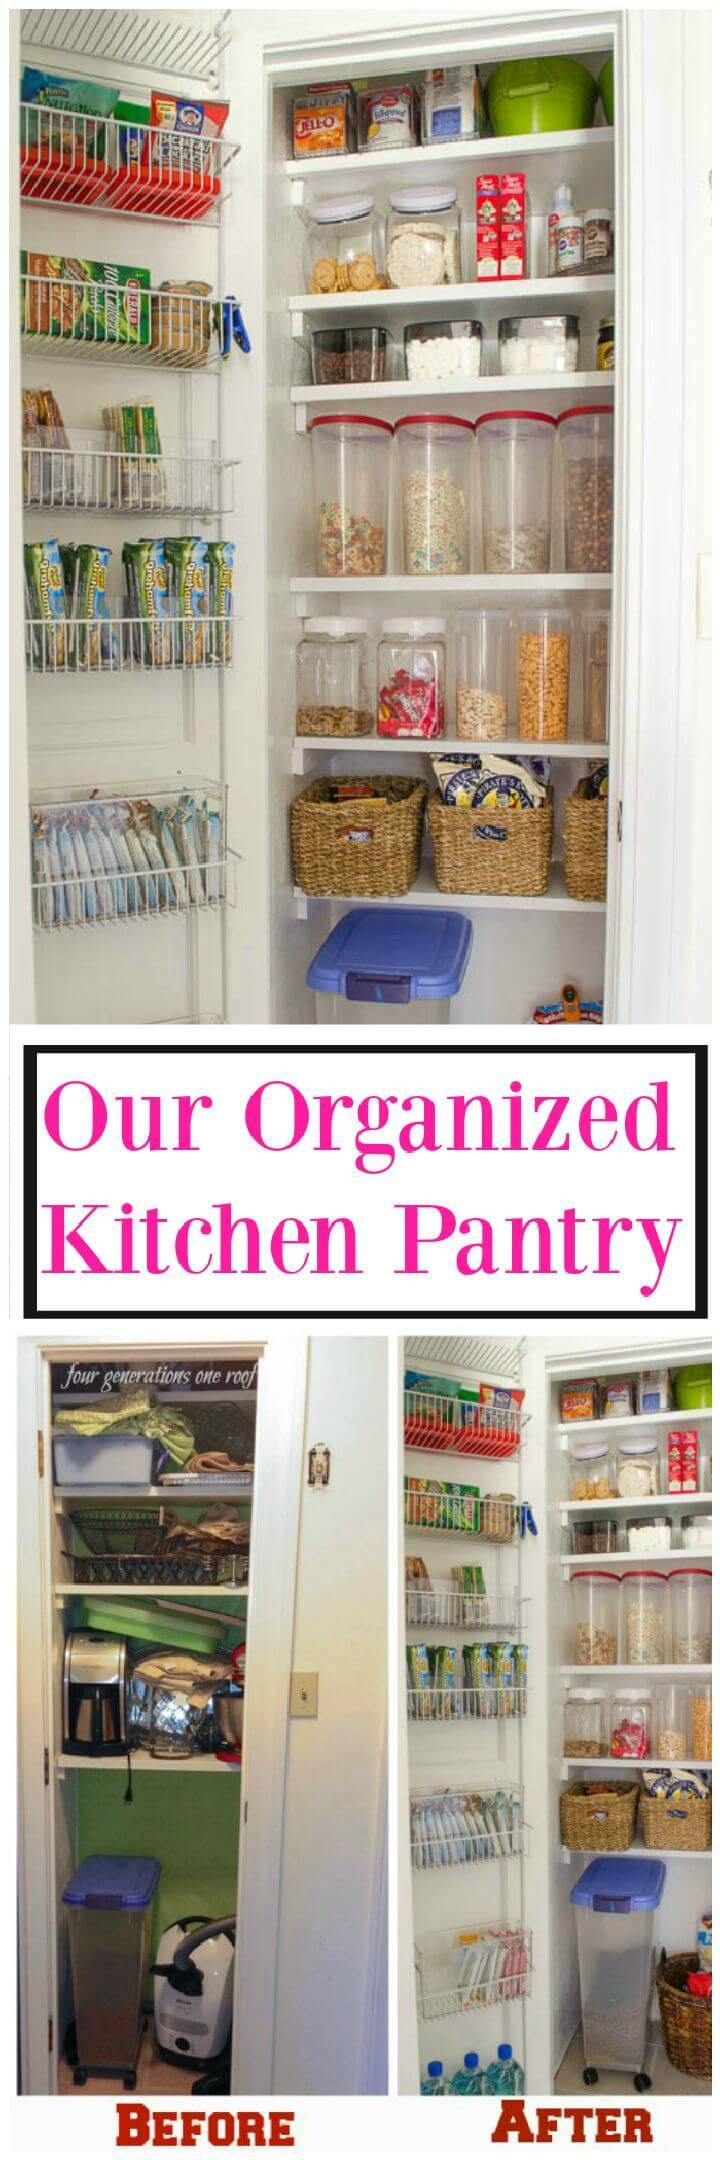 Our Organized Kitchen Pantry